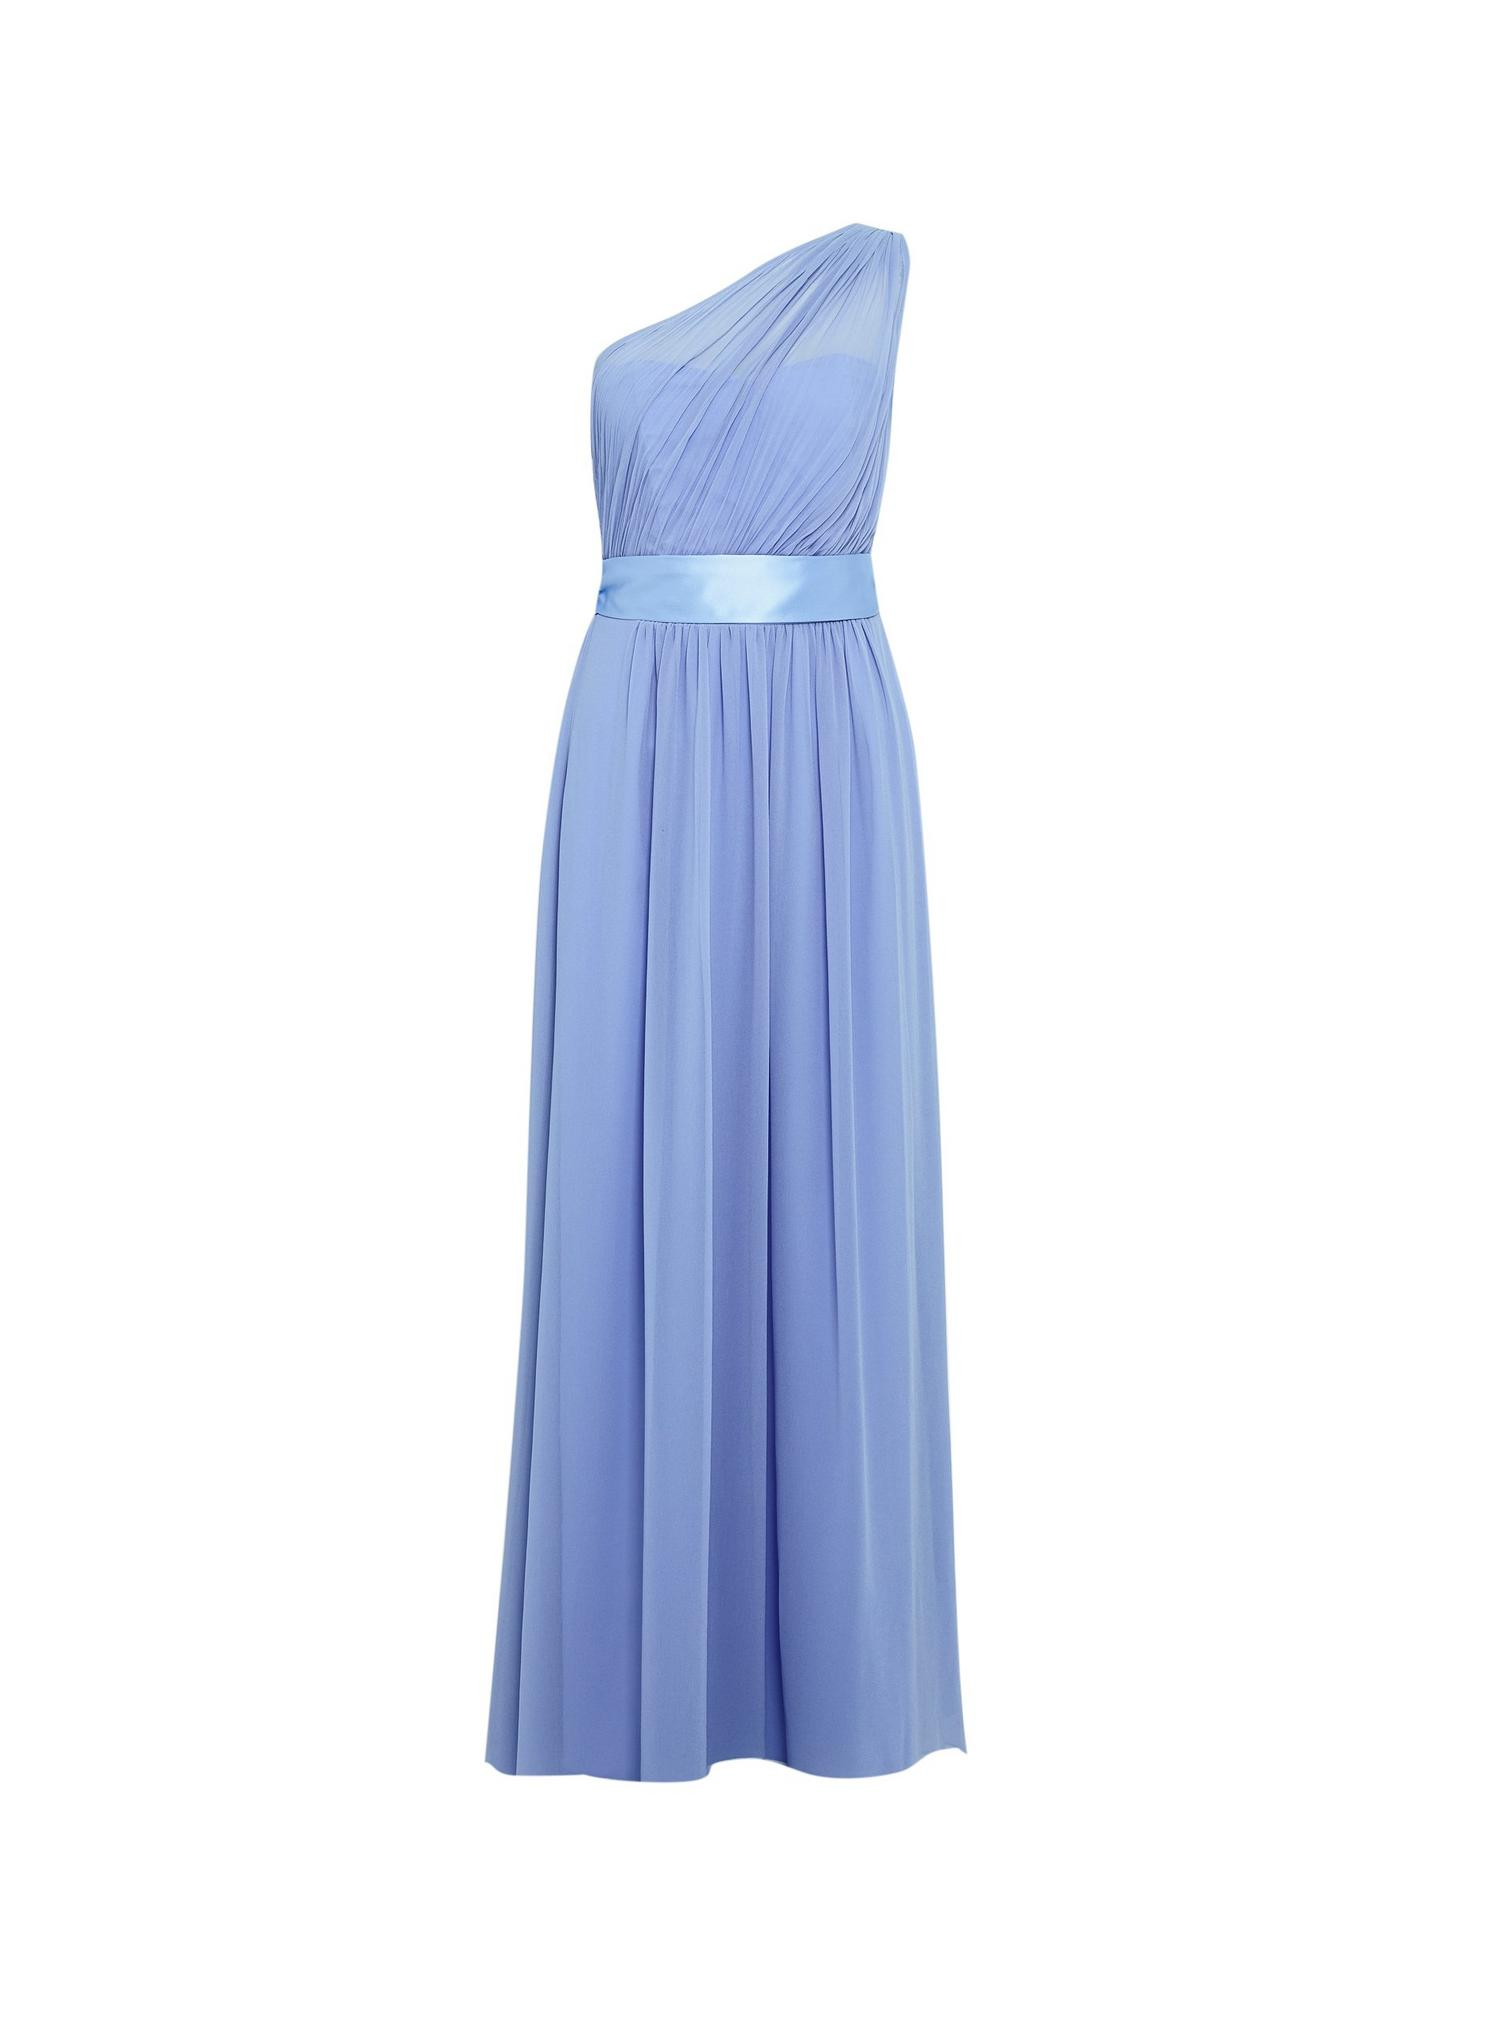 106 Sadie  Blue One Shoulder Maxi Dress image number 4